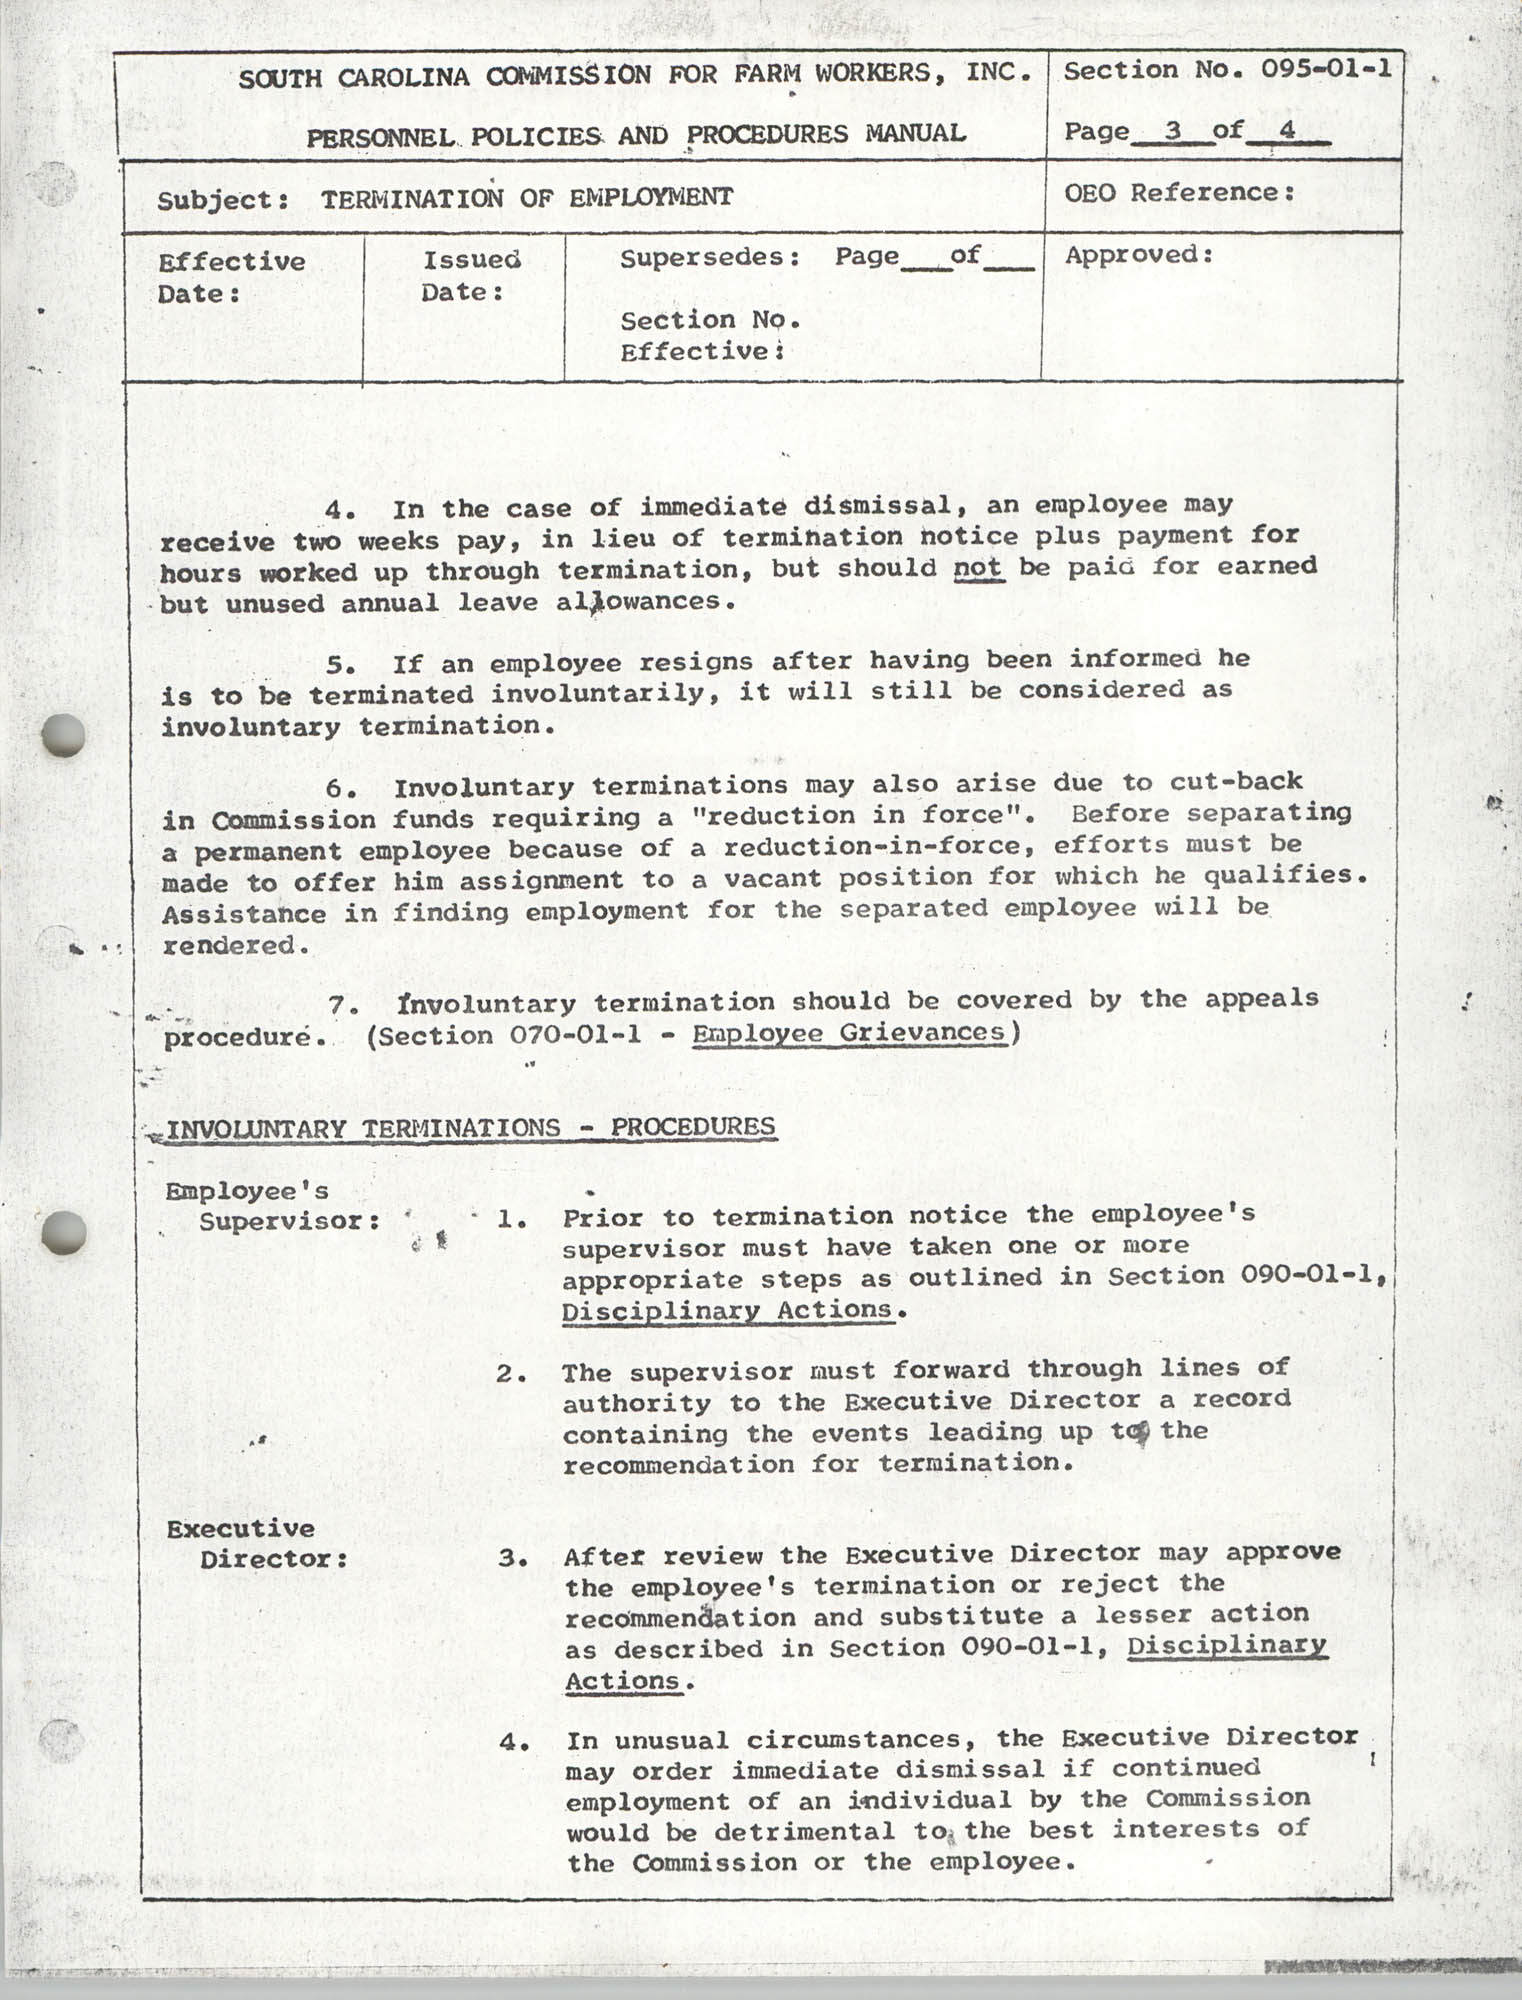 Personnel Policies and Procedures Manual, Section No. 095-01-1, Page 3